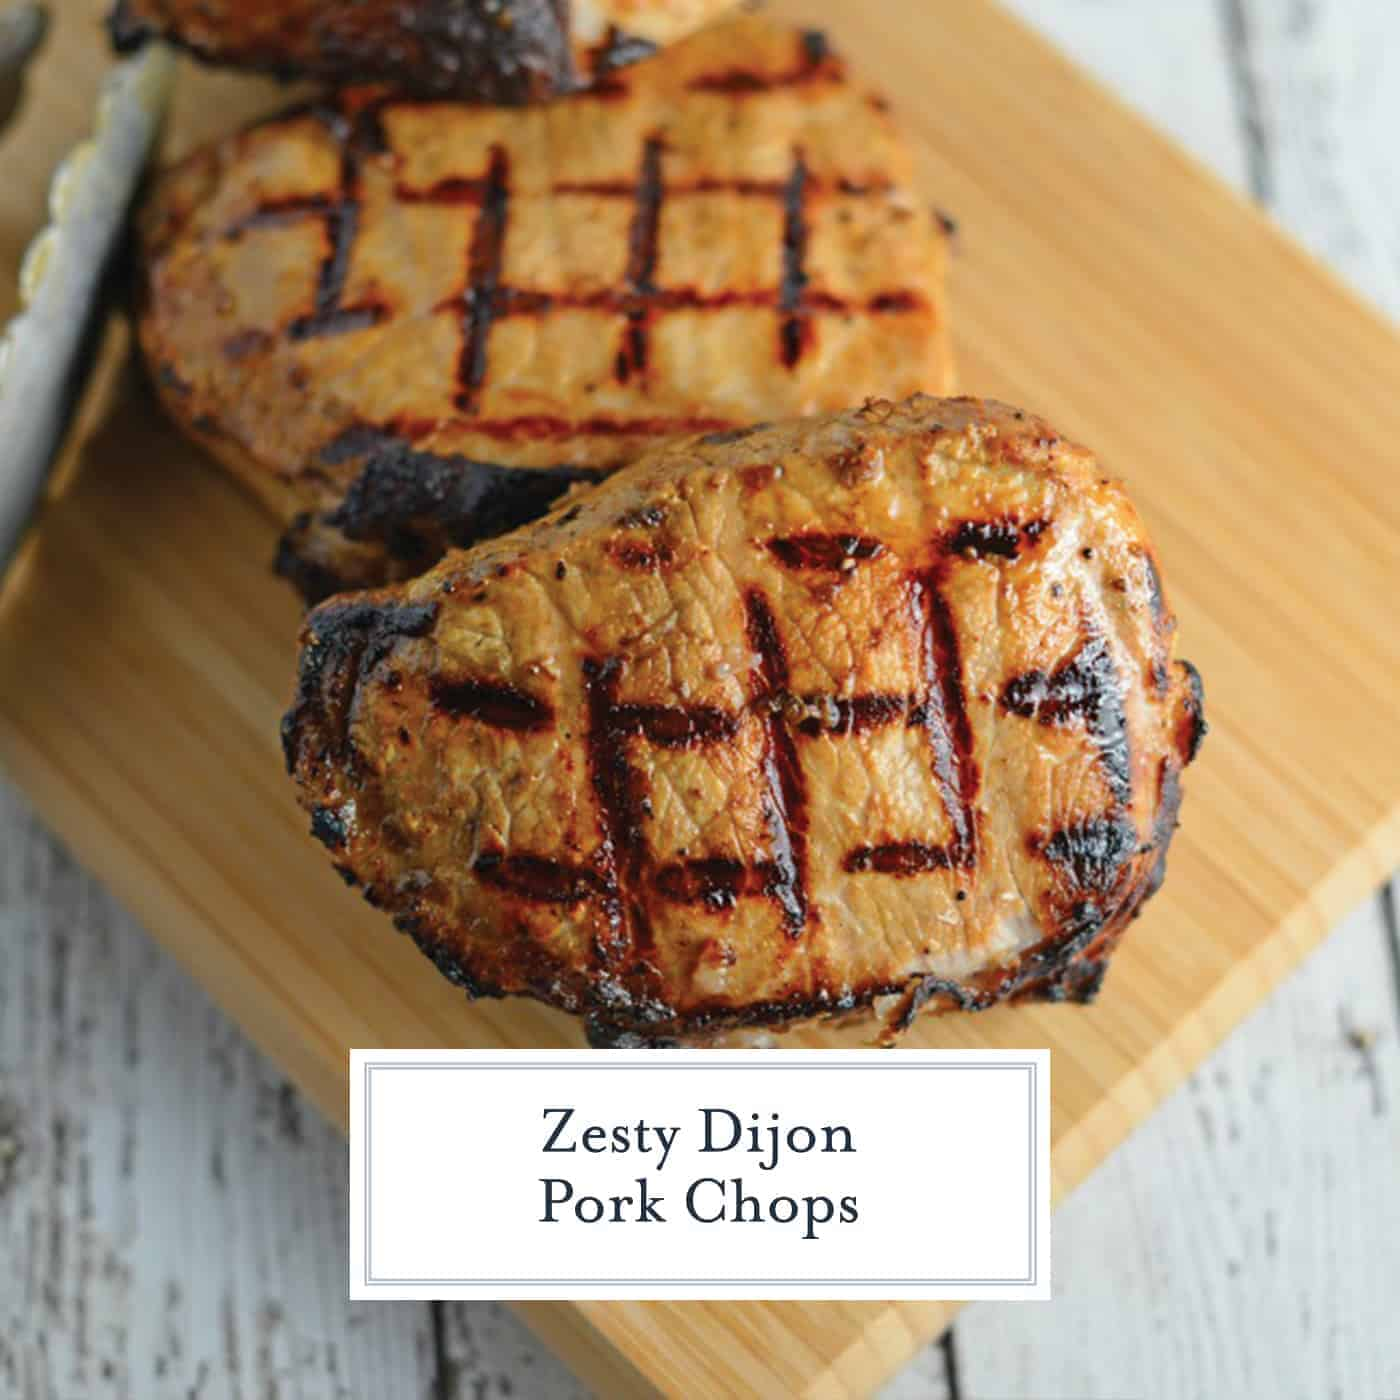 Grilled Dijon Pork Chops are a favorite for pork on the grill. A zesty and easy pork marinade recipes perfect for grilled or baked pork chops! #porkchopsonthegrill #grilledpork www.savoryexperiments.com